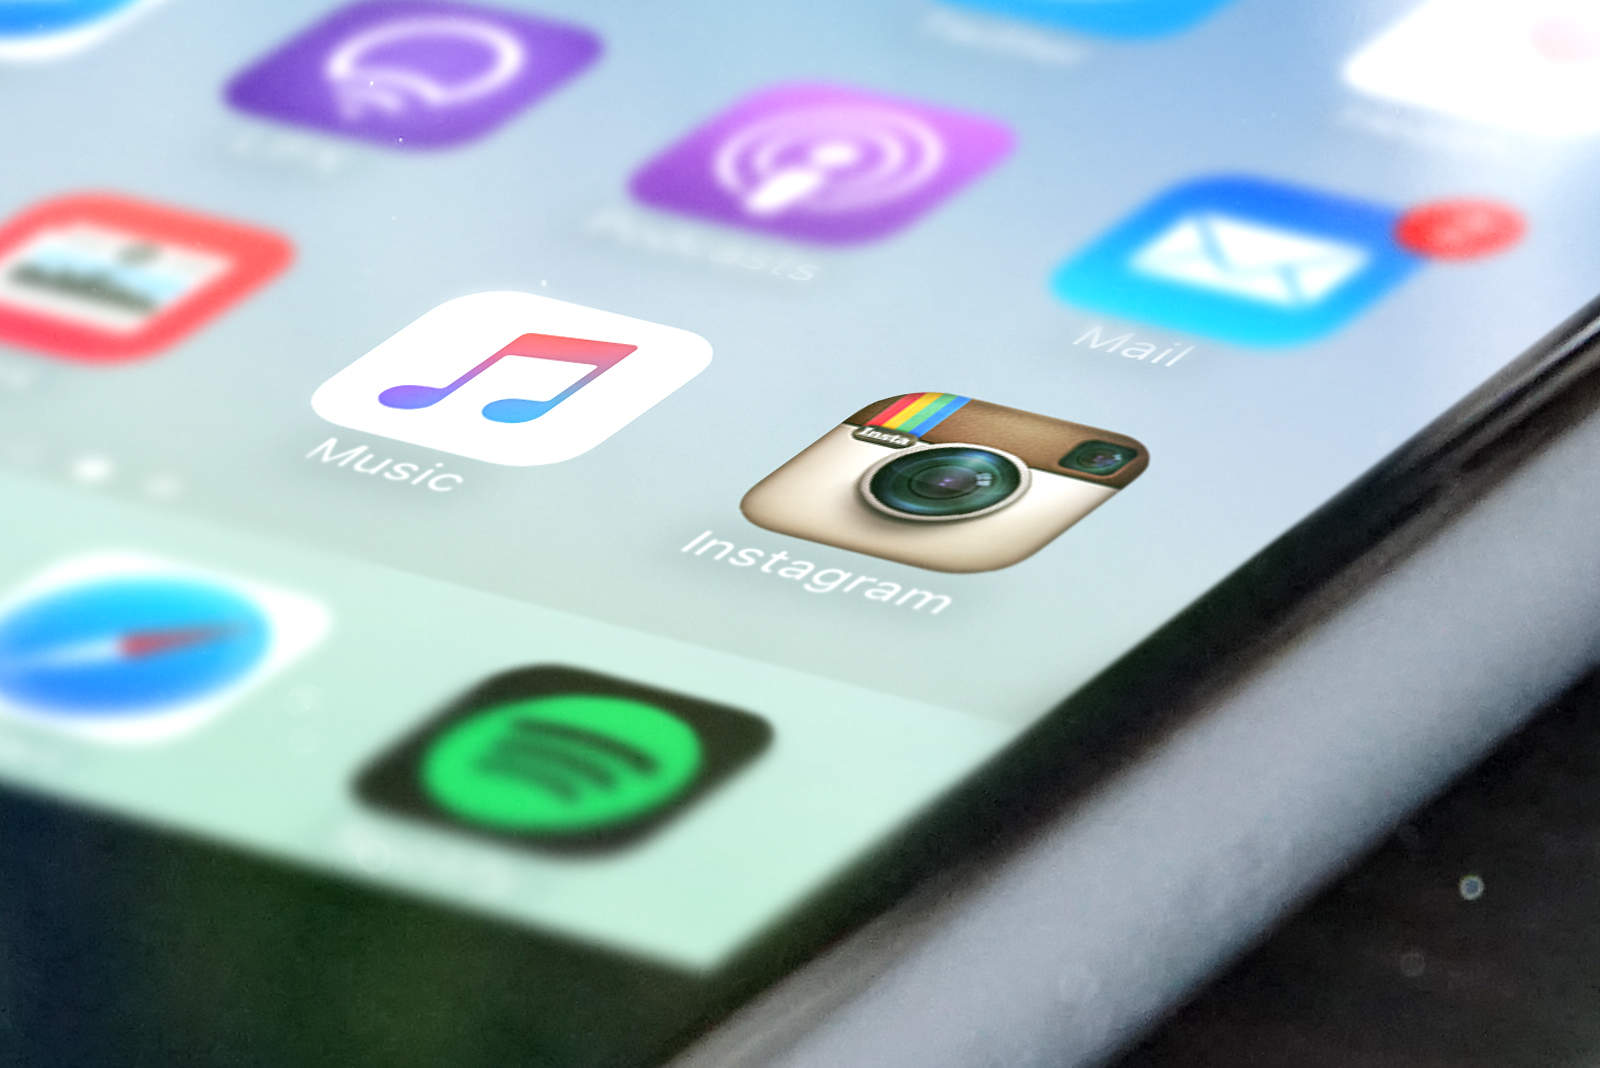 Phew! New Instagram update restores log out button